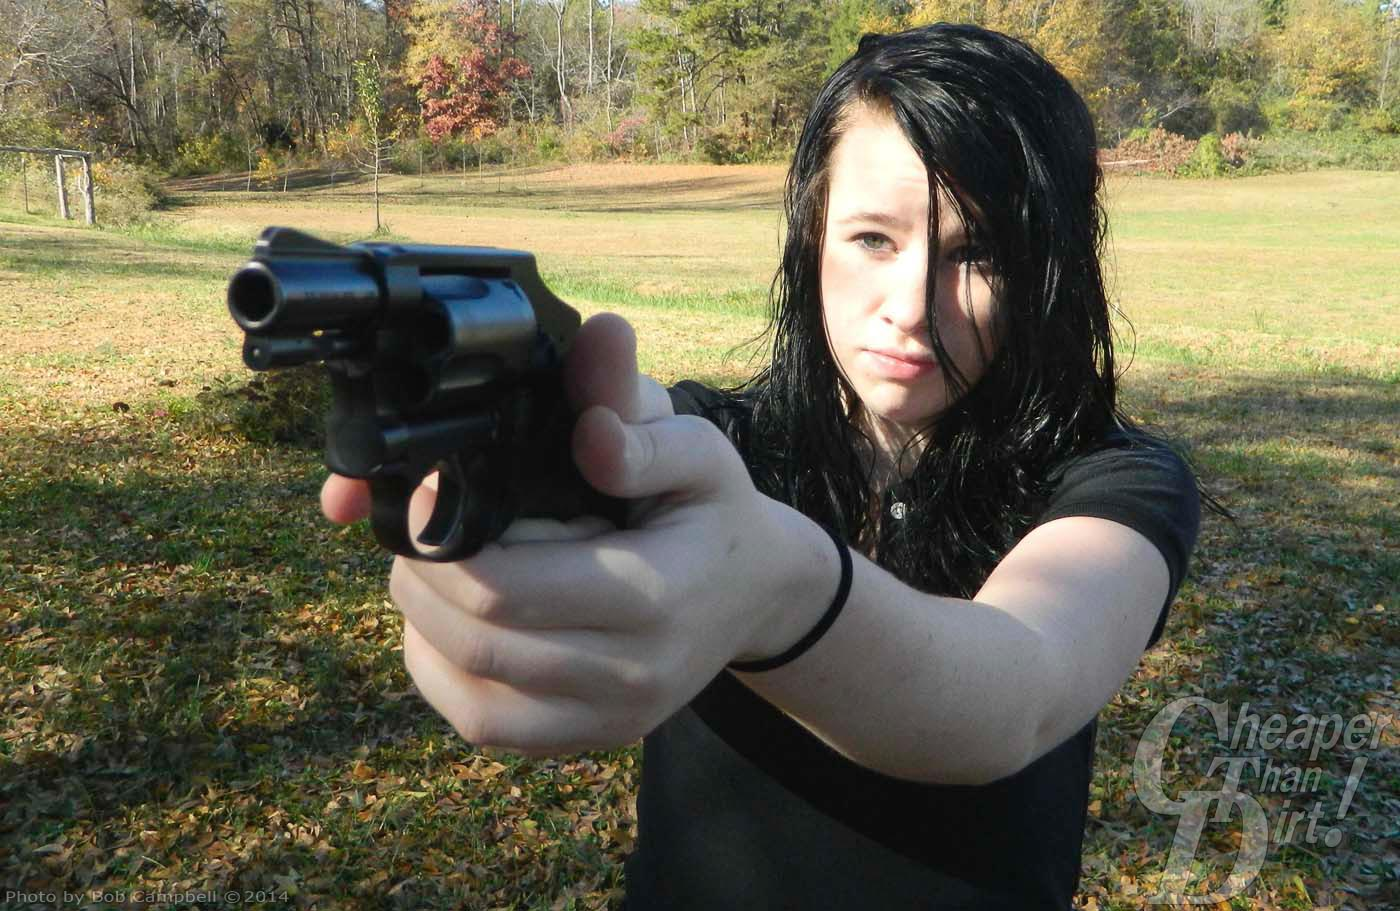 Dark haired woman holding a revolver